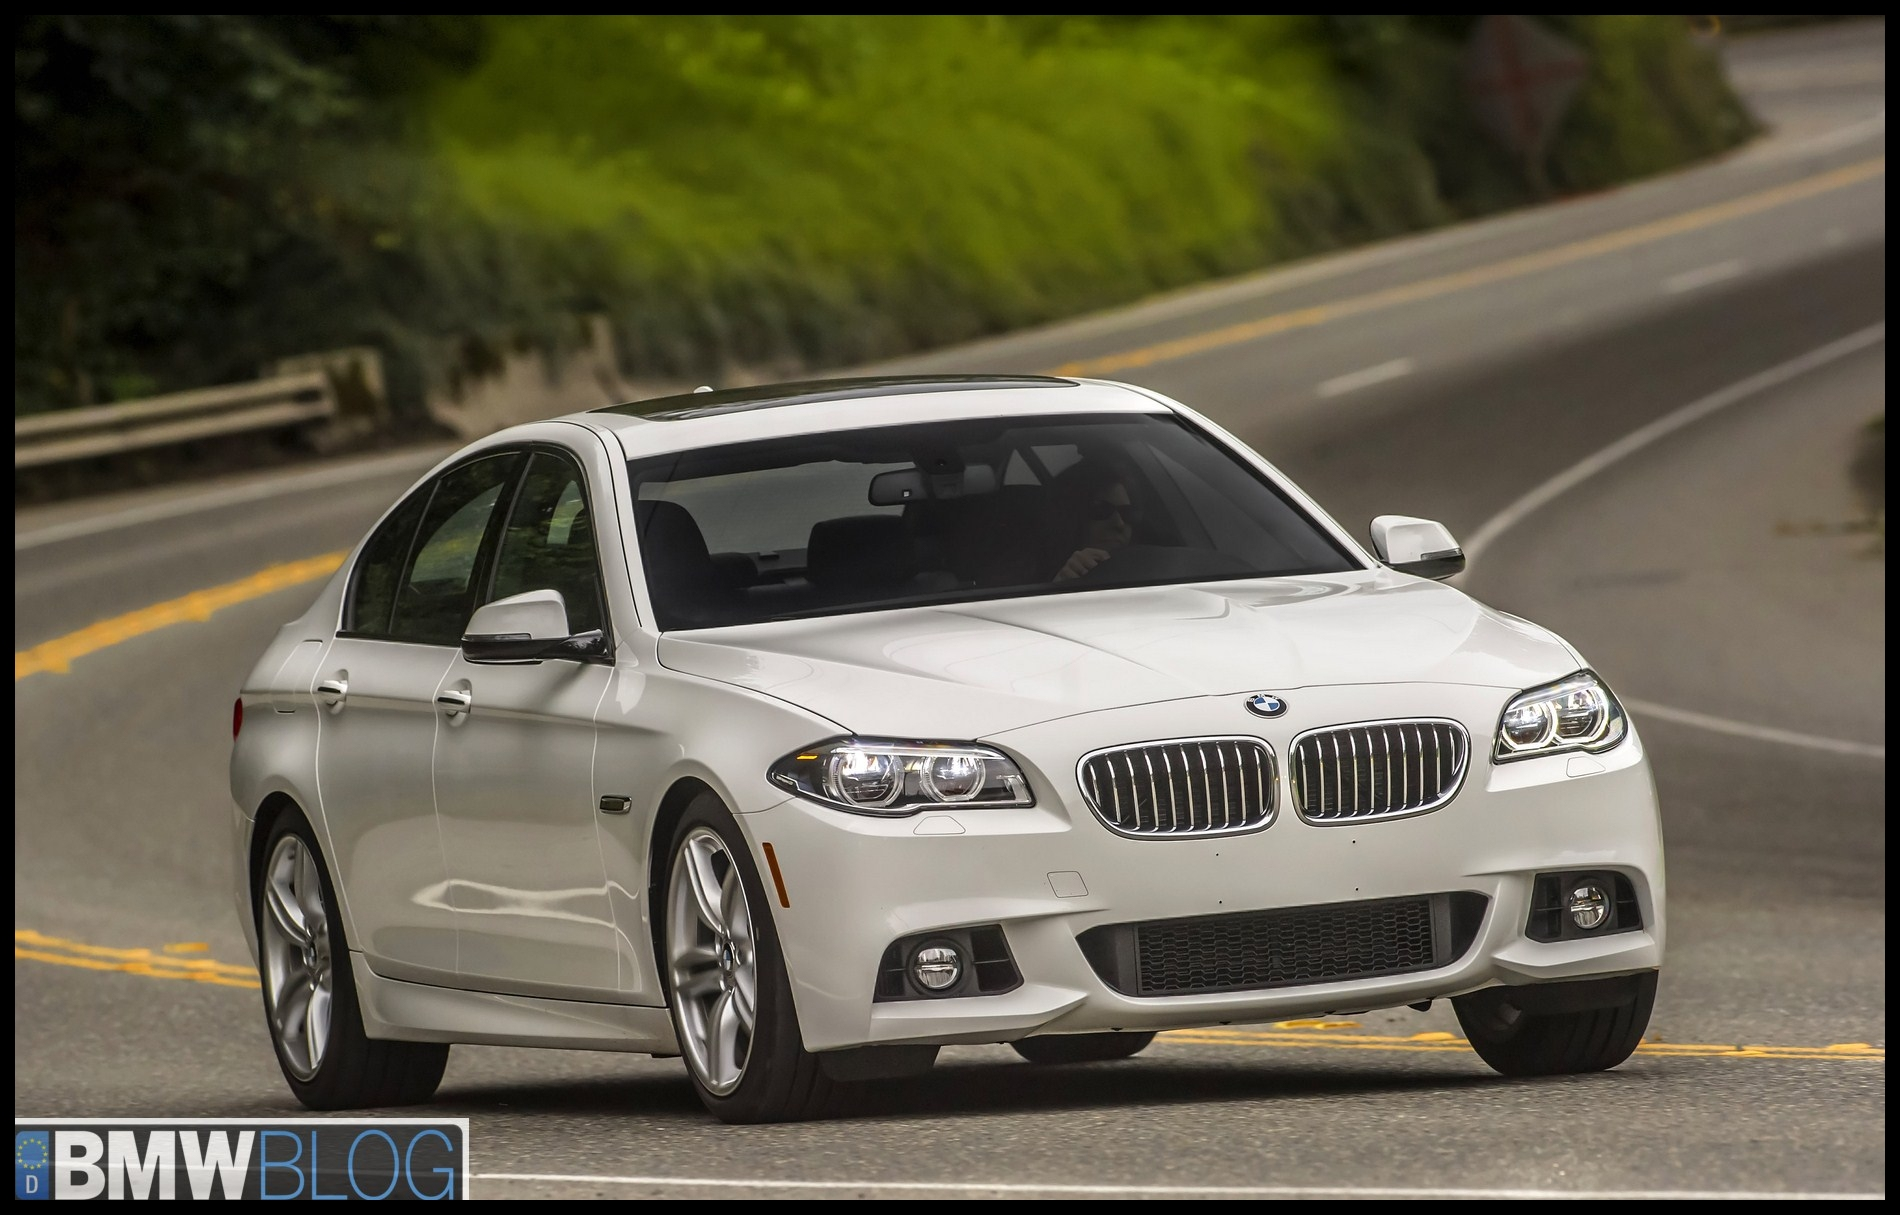 2015 Bmw 550i M Sport Autocar Review Jaguar Xf 3 0d S Vs Bmw 530d